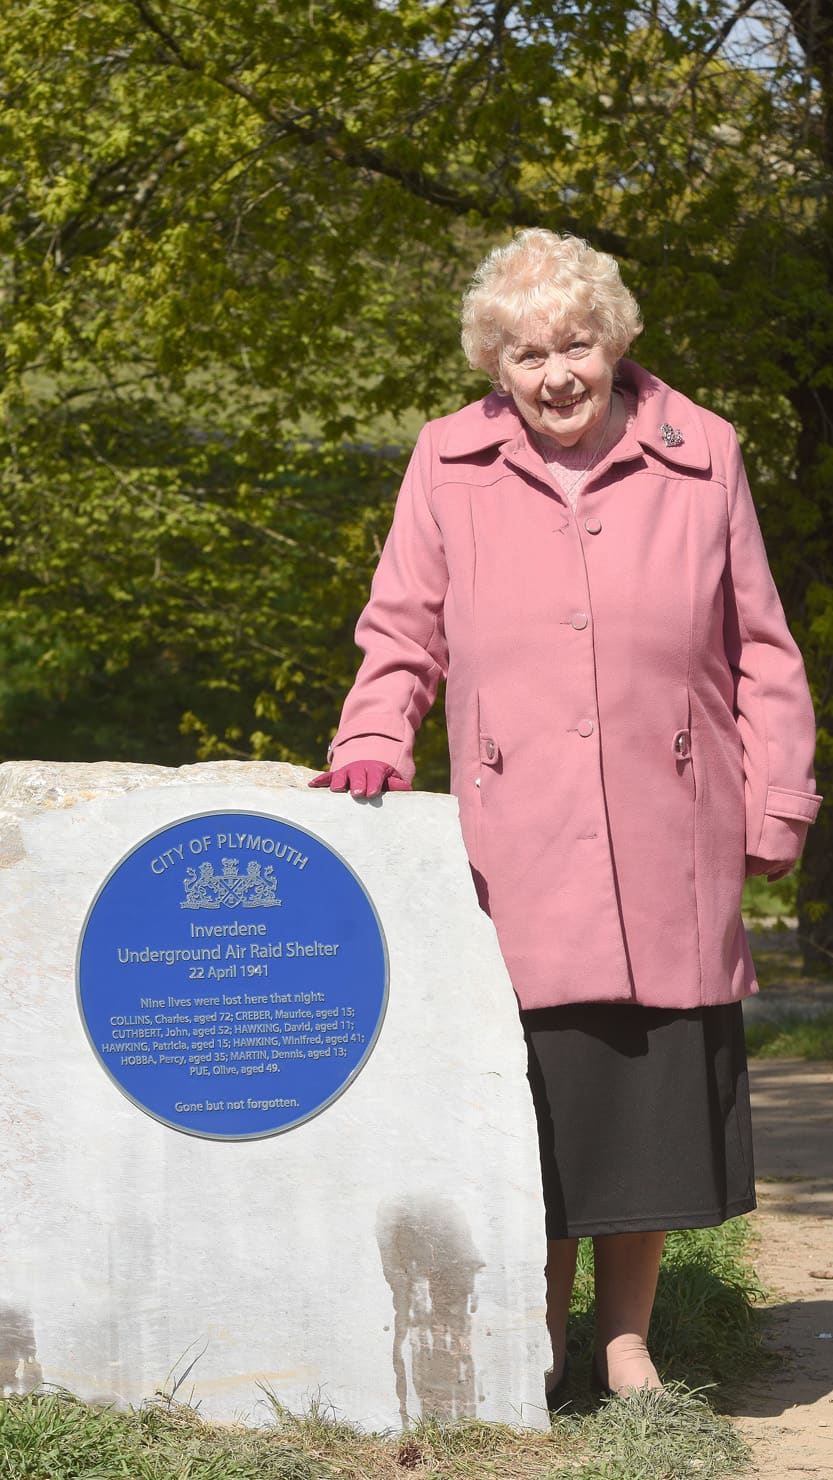 Shirley Stapley with the Inverdene air raid shelter plaque.